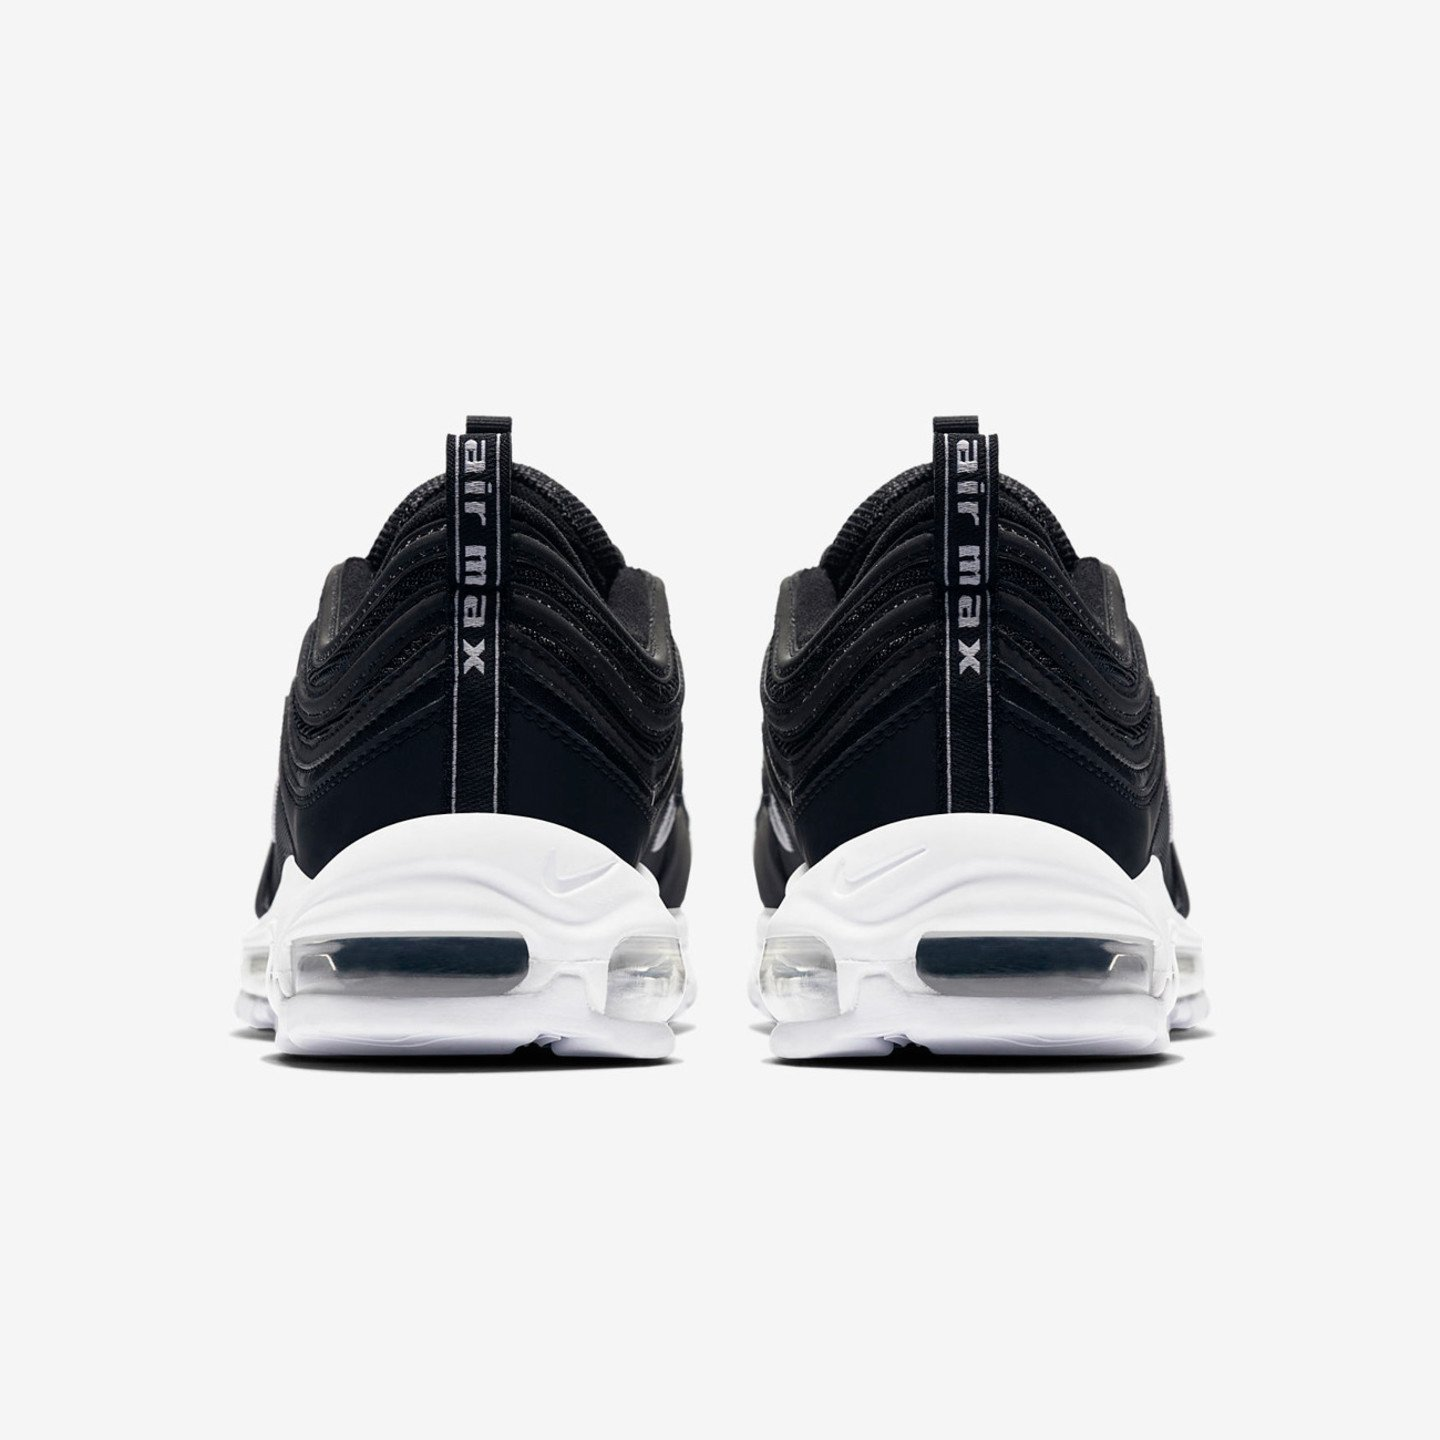 Nike Air Max 97 Black / White / Red 921826-001